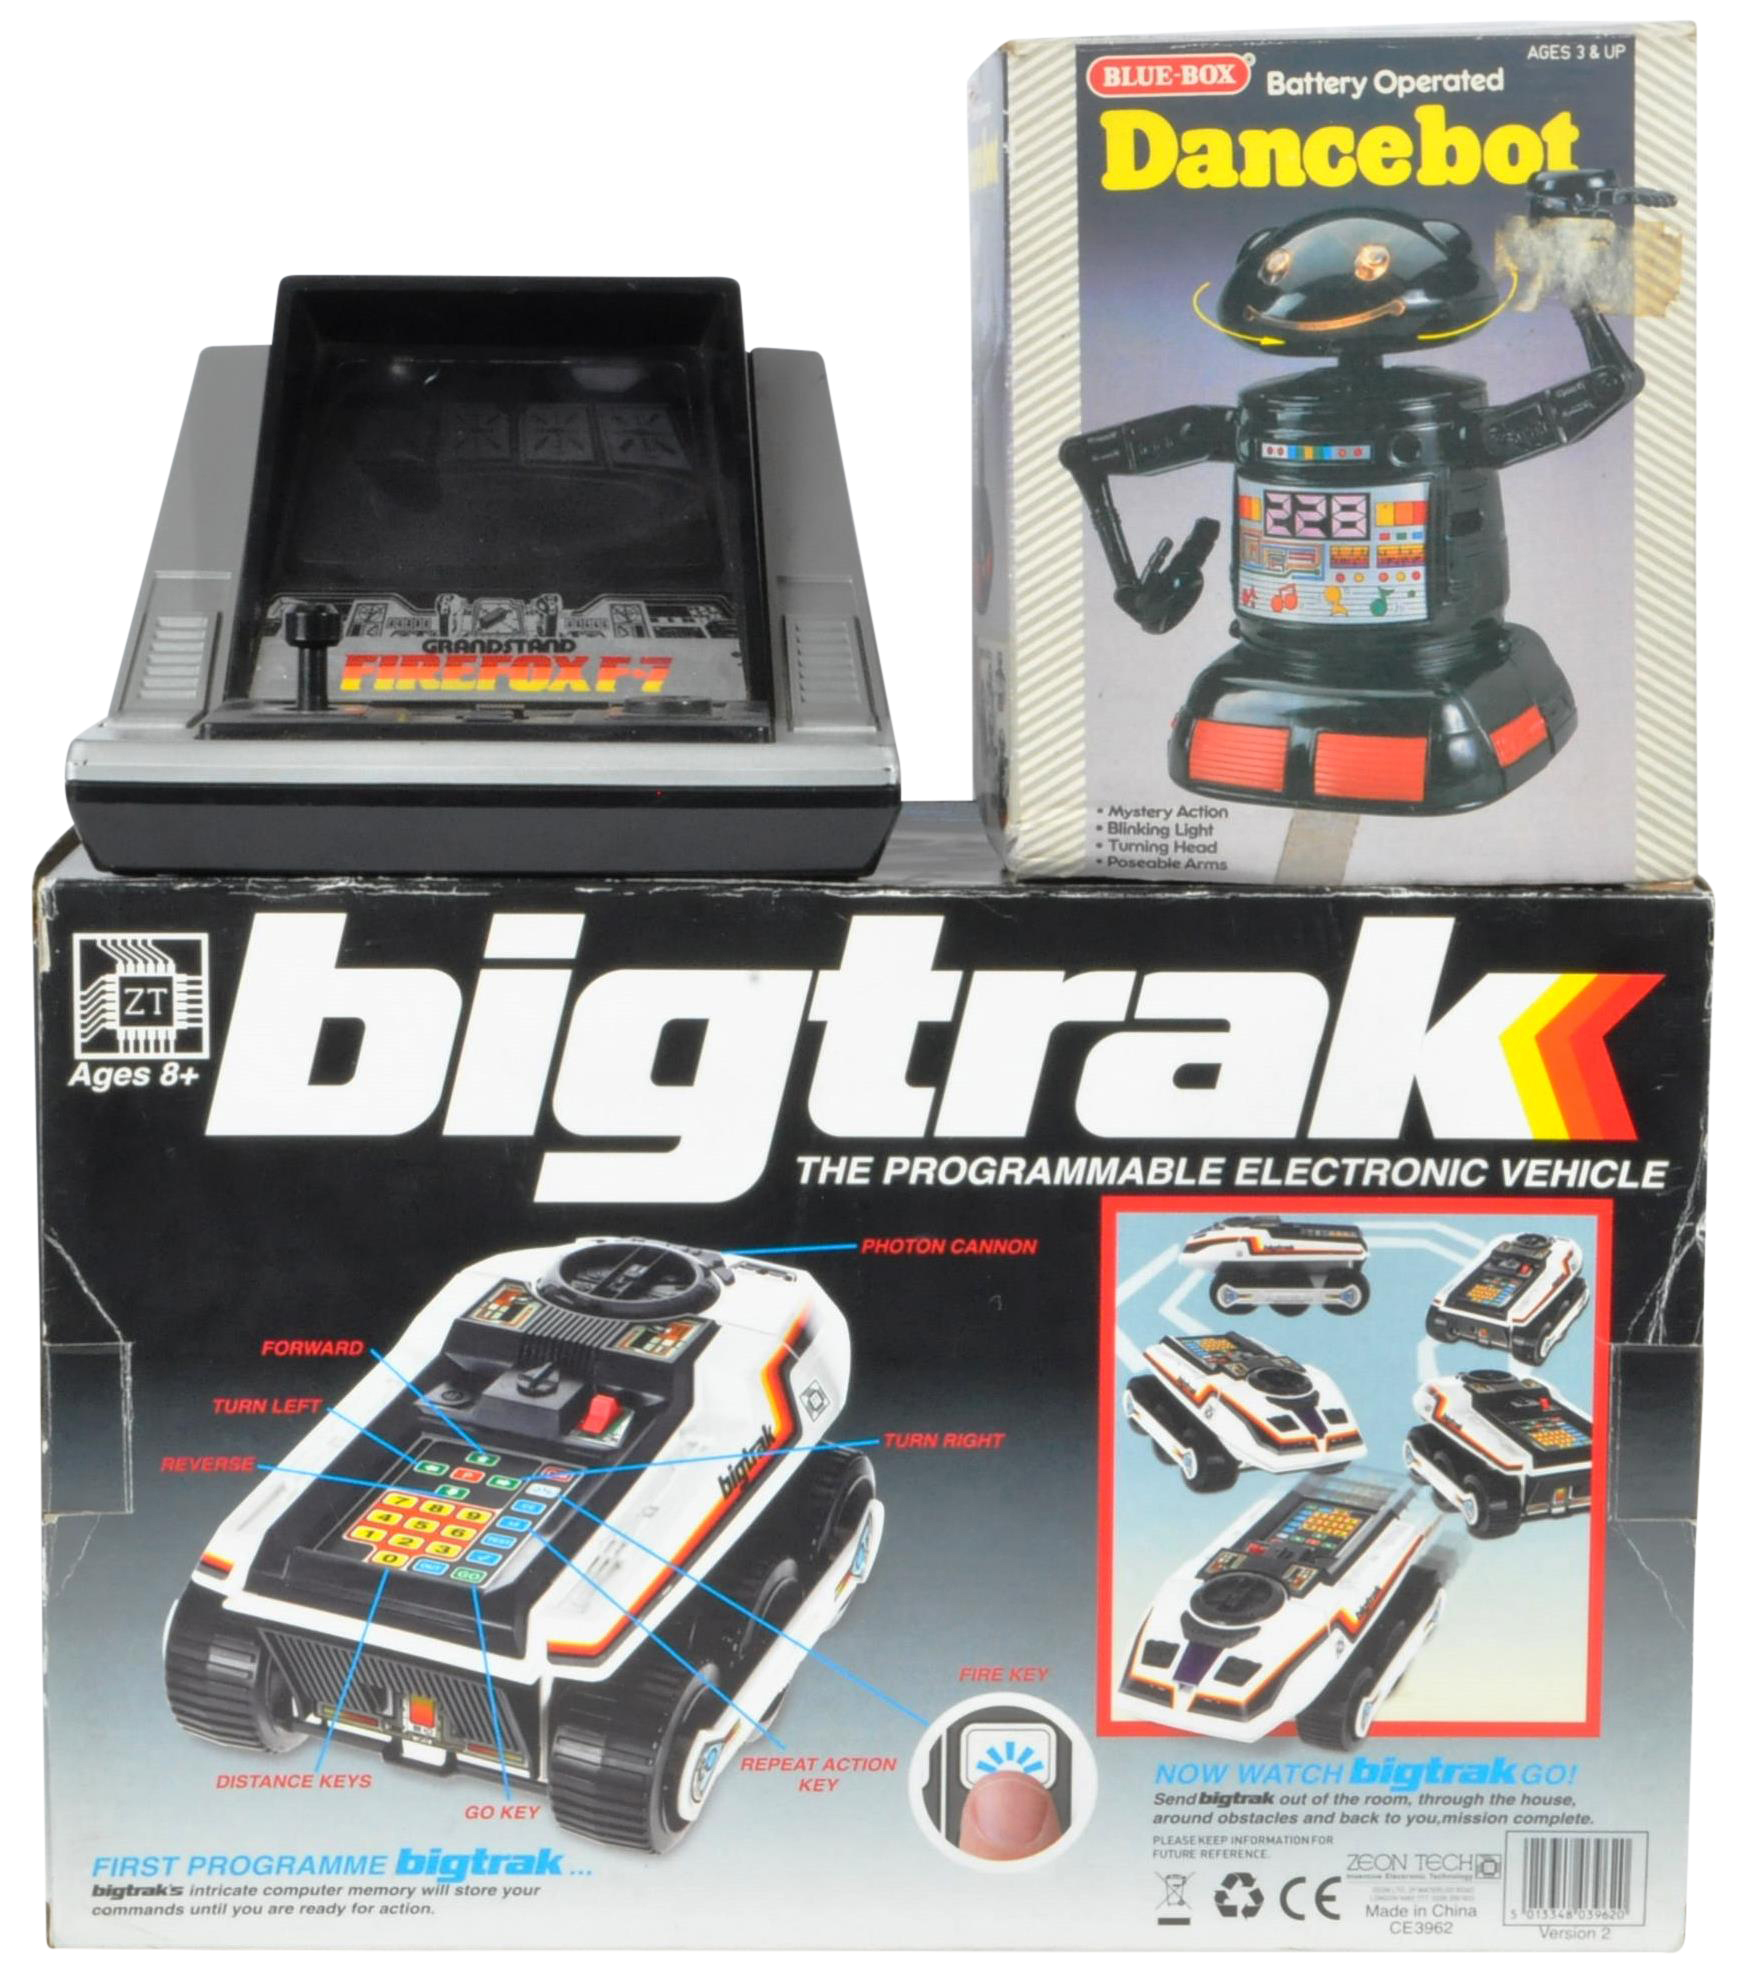 COLLECTION OF ASSORTED VINTAGE ELECTRONIC TOYS AND GAMES